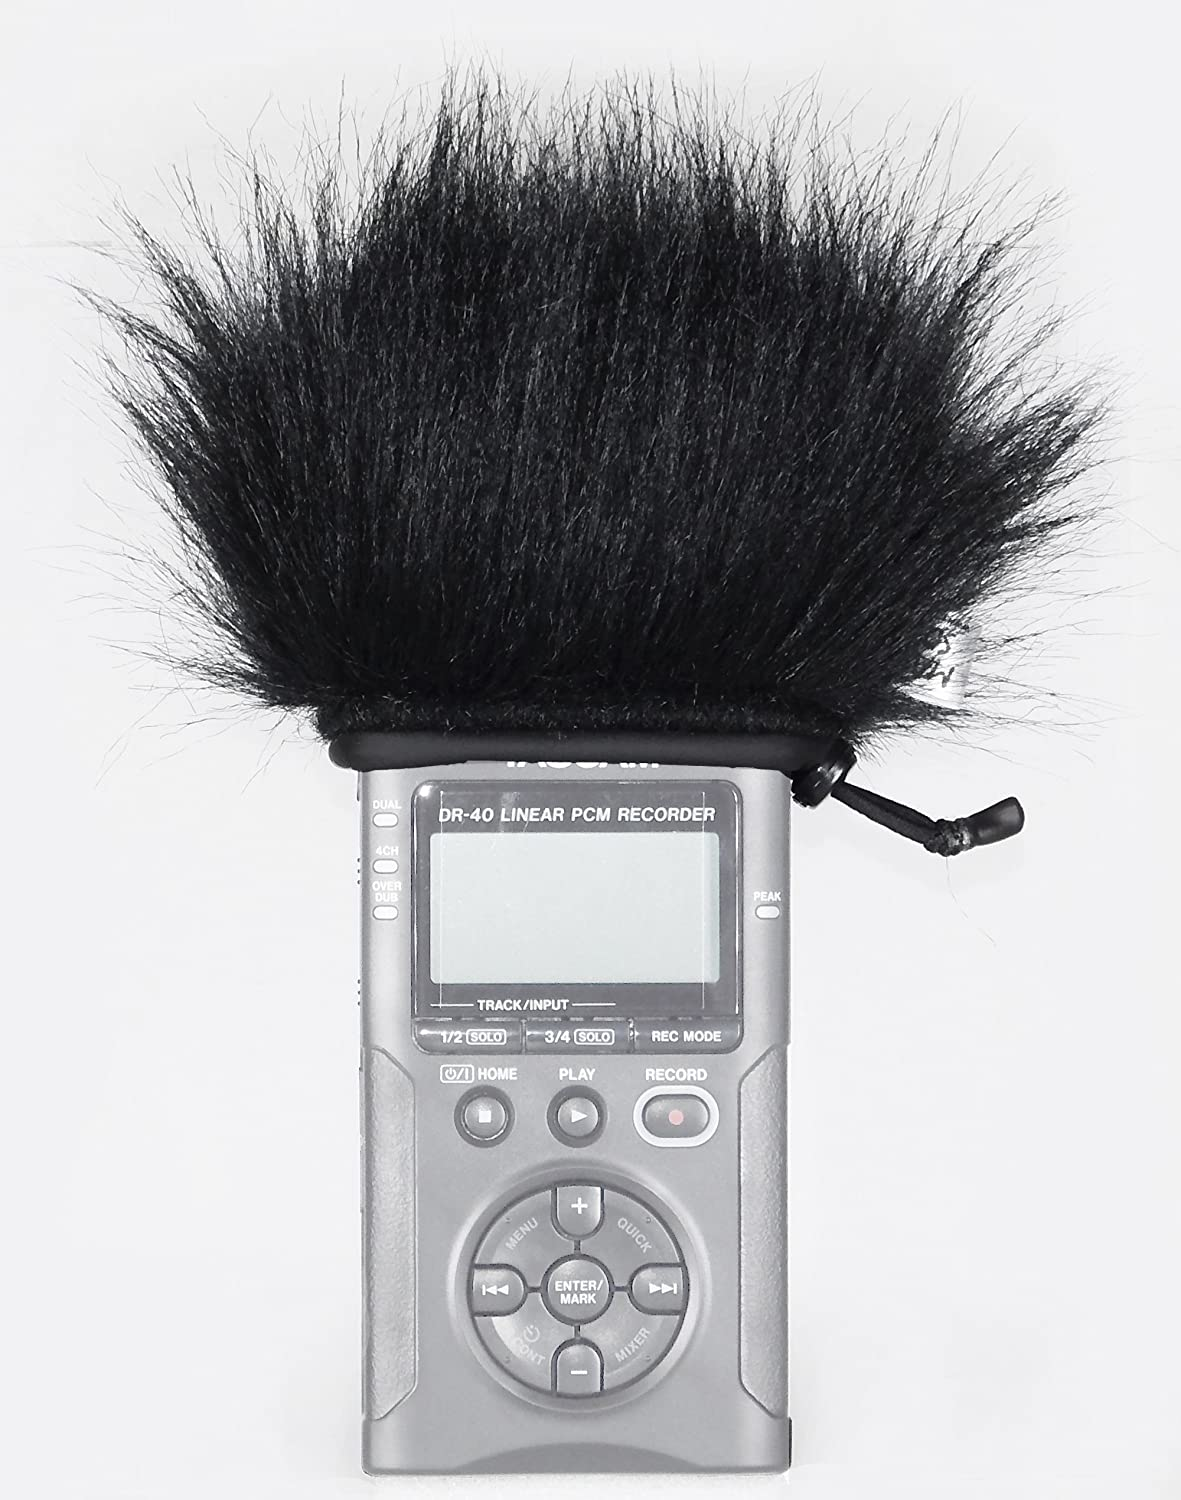 Master Sound Tascam DR-40, Windscreen Muff for recorder Tascam DR-40 to protect the record from the wind, easy to put on hand recorders, made in the EU from certified, materials Master Sound l.t.d. WSR Tascam DR40